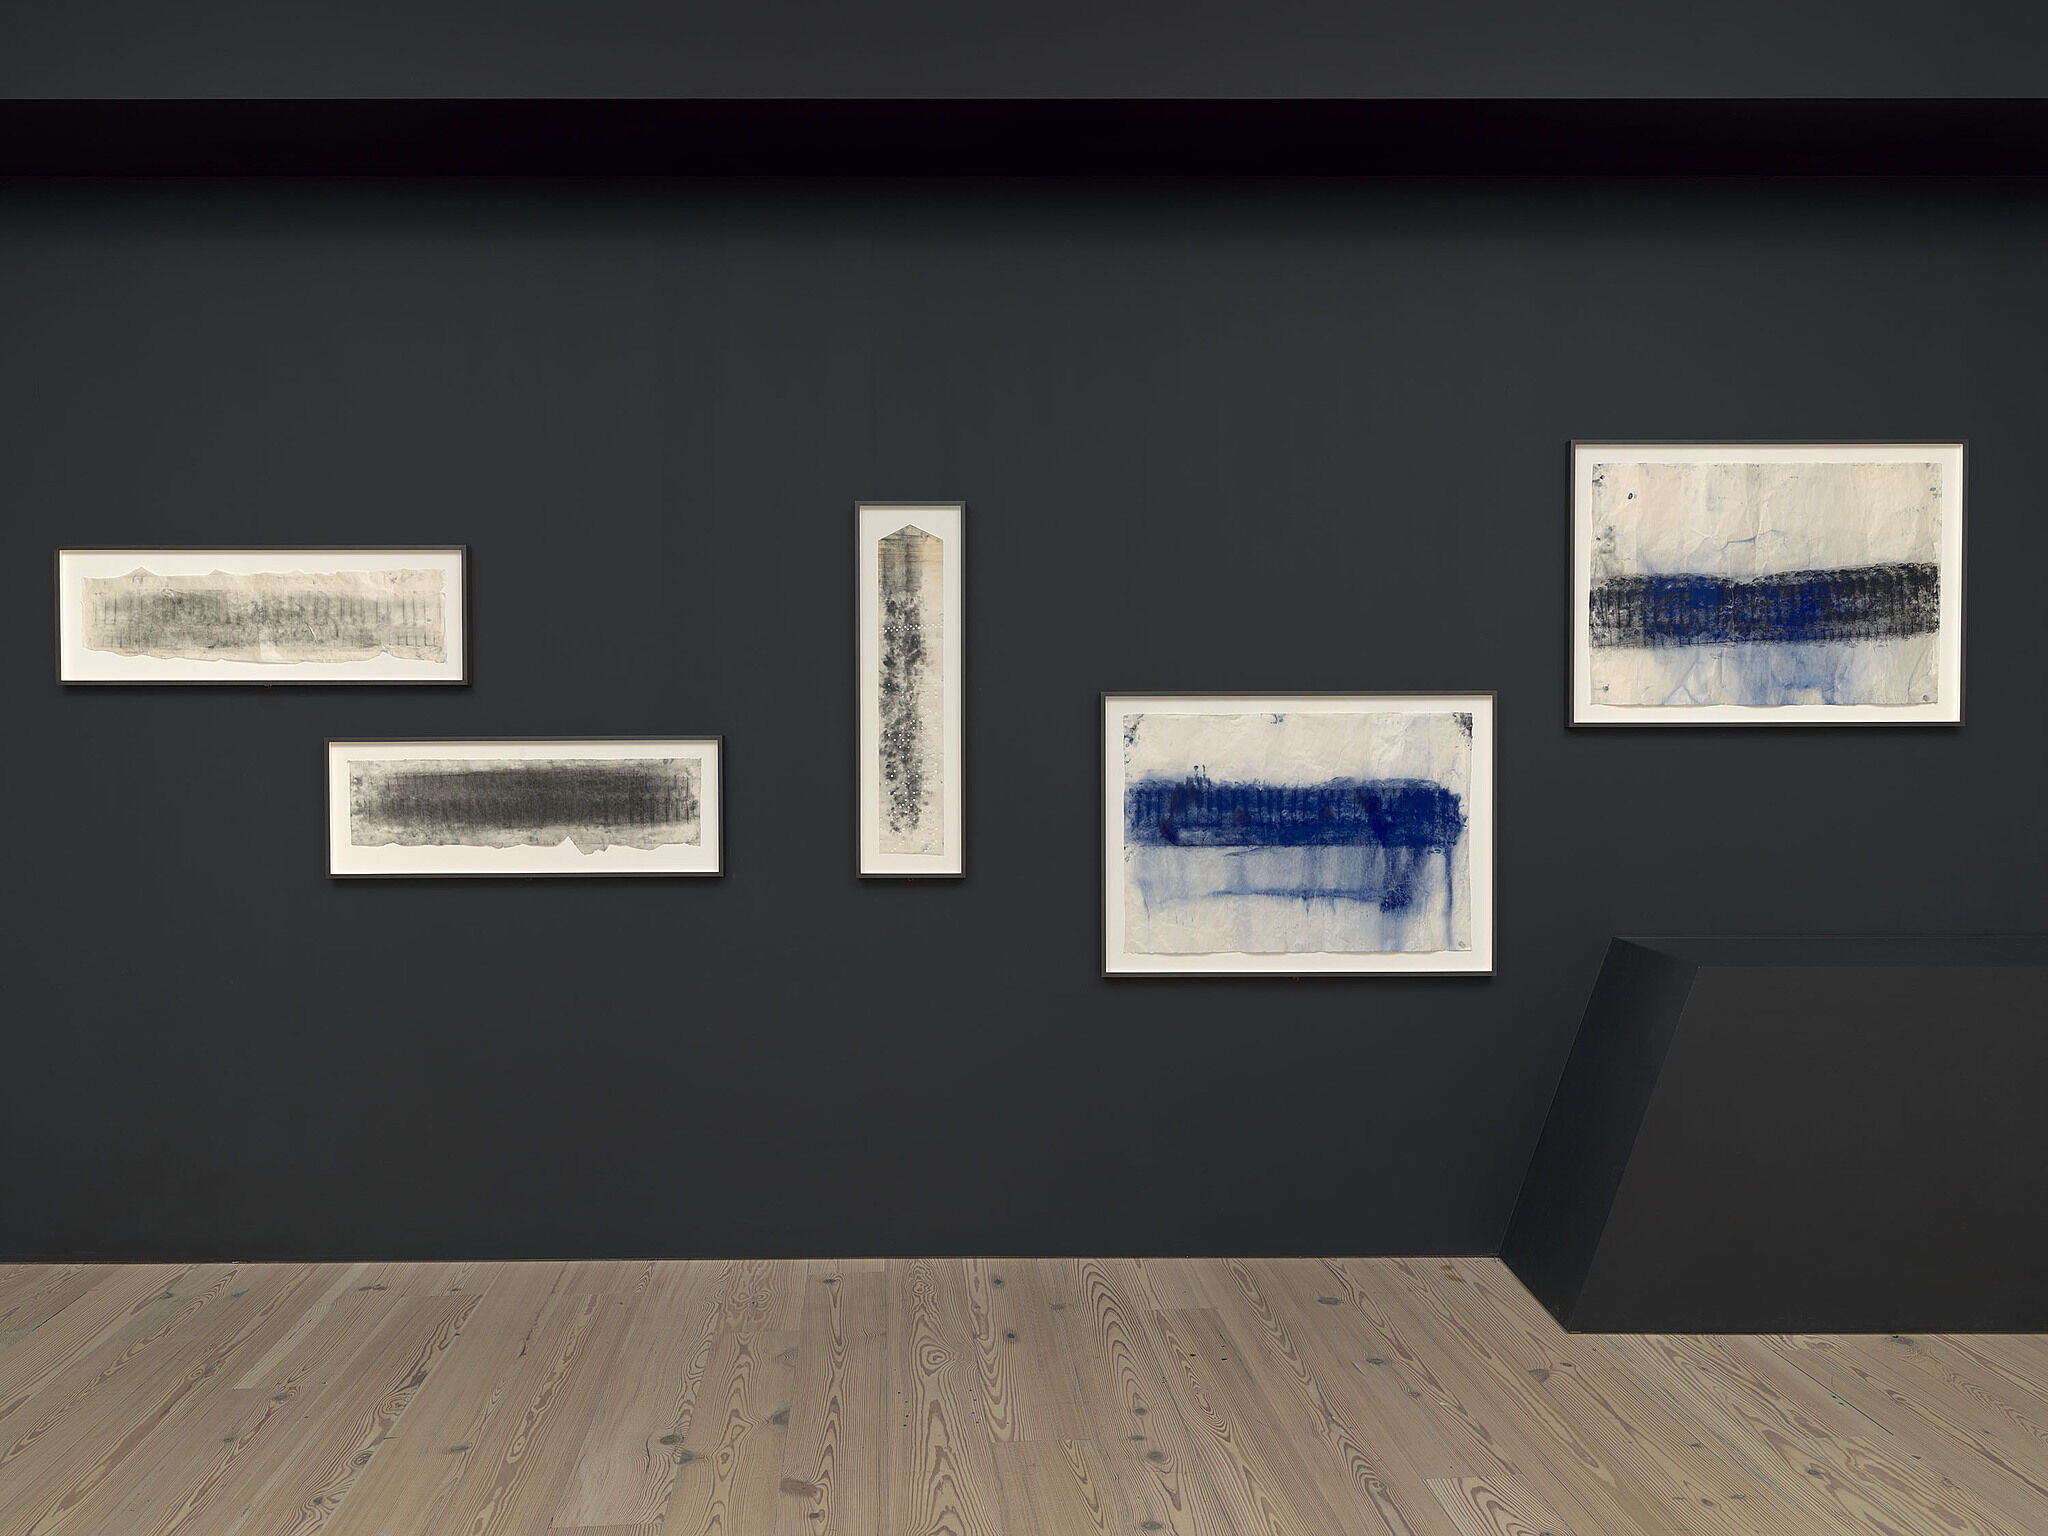 A wall of various charcoal drawings